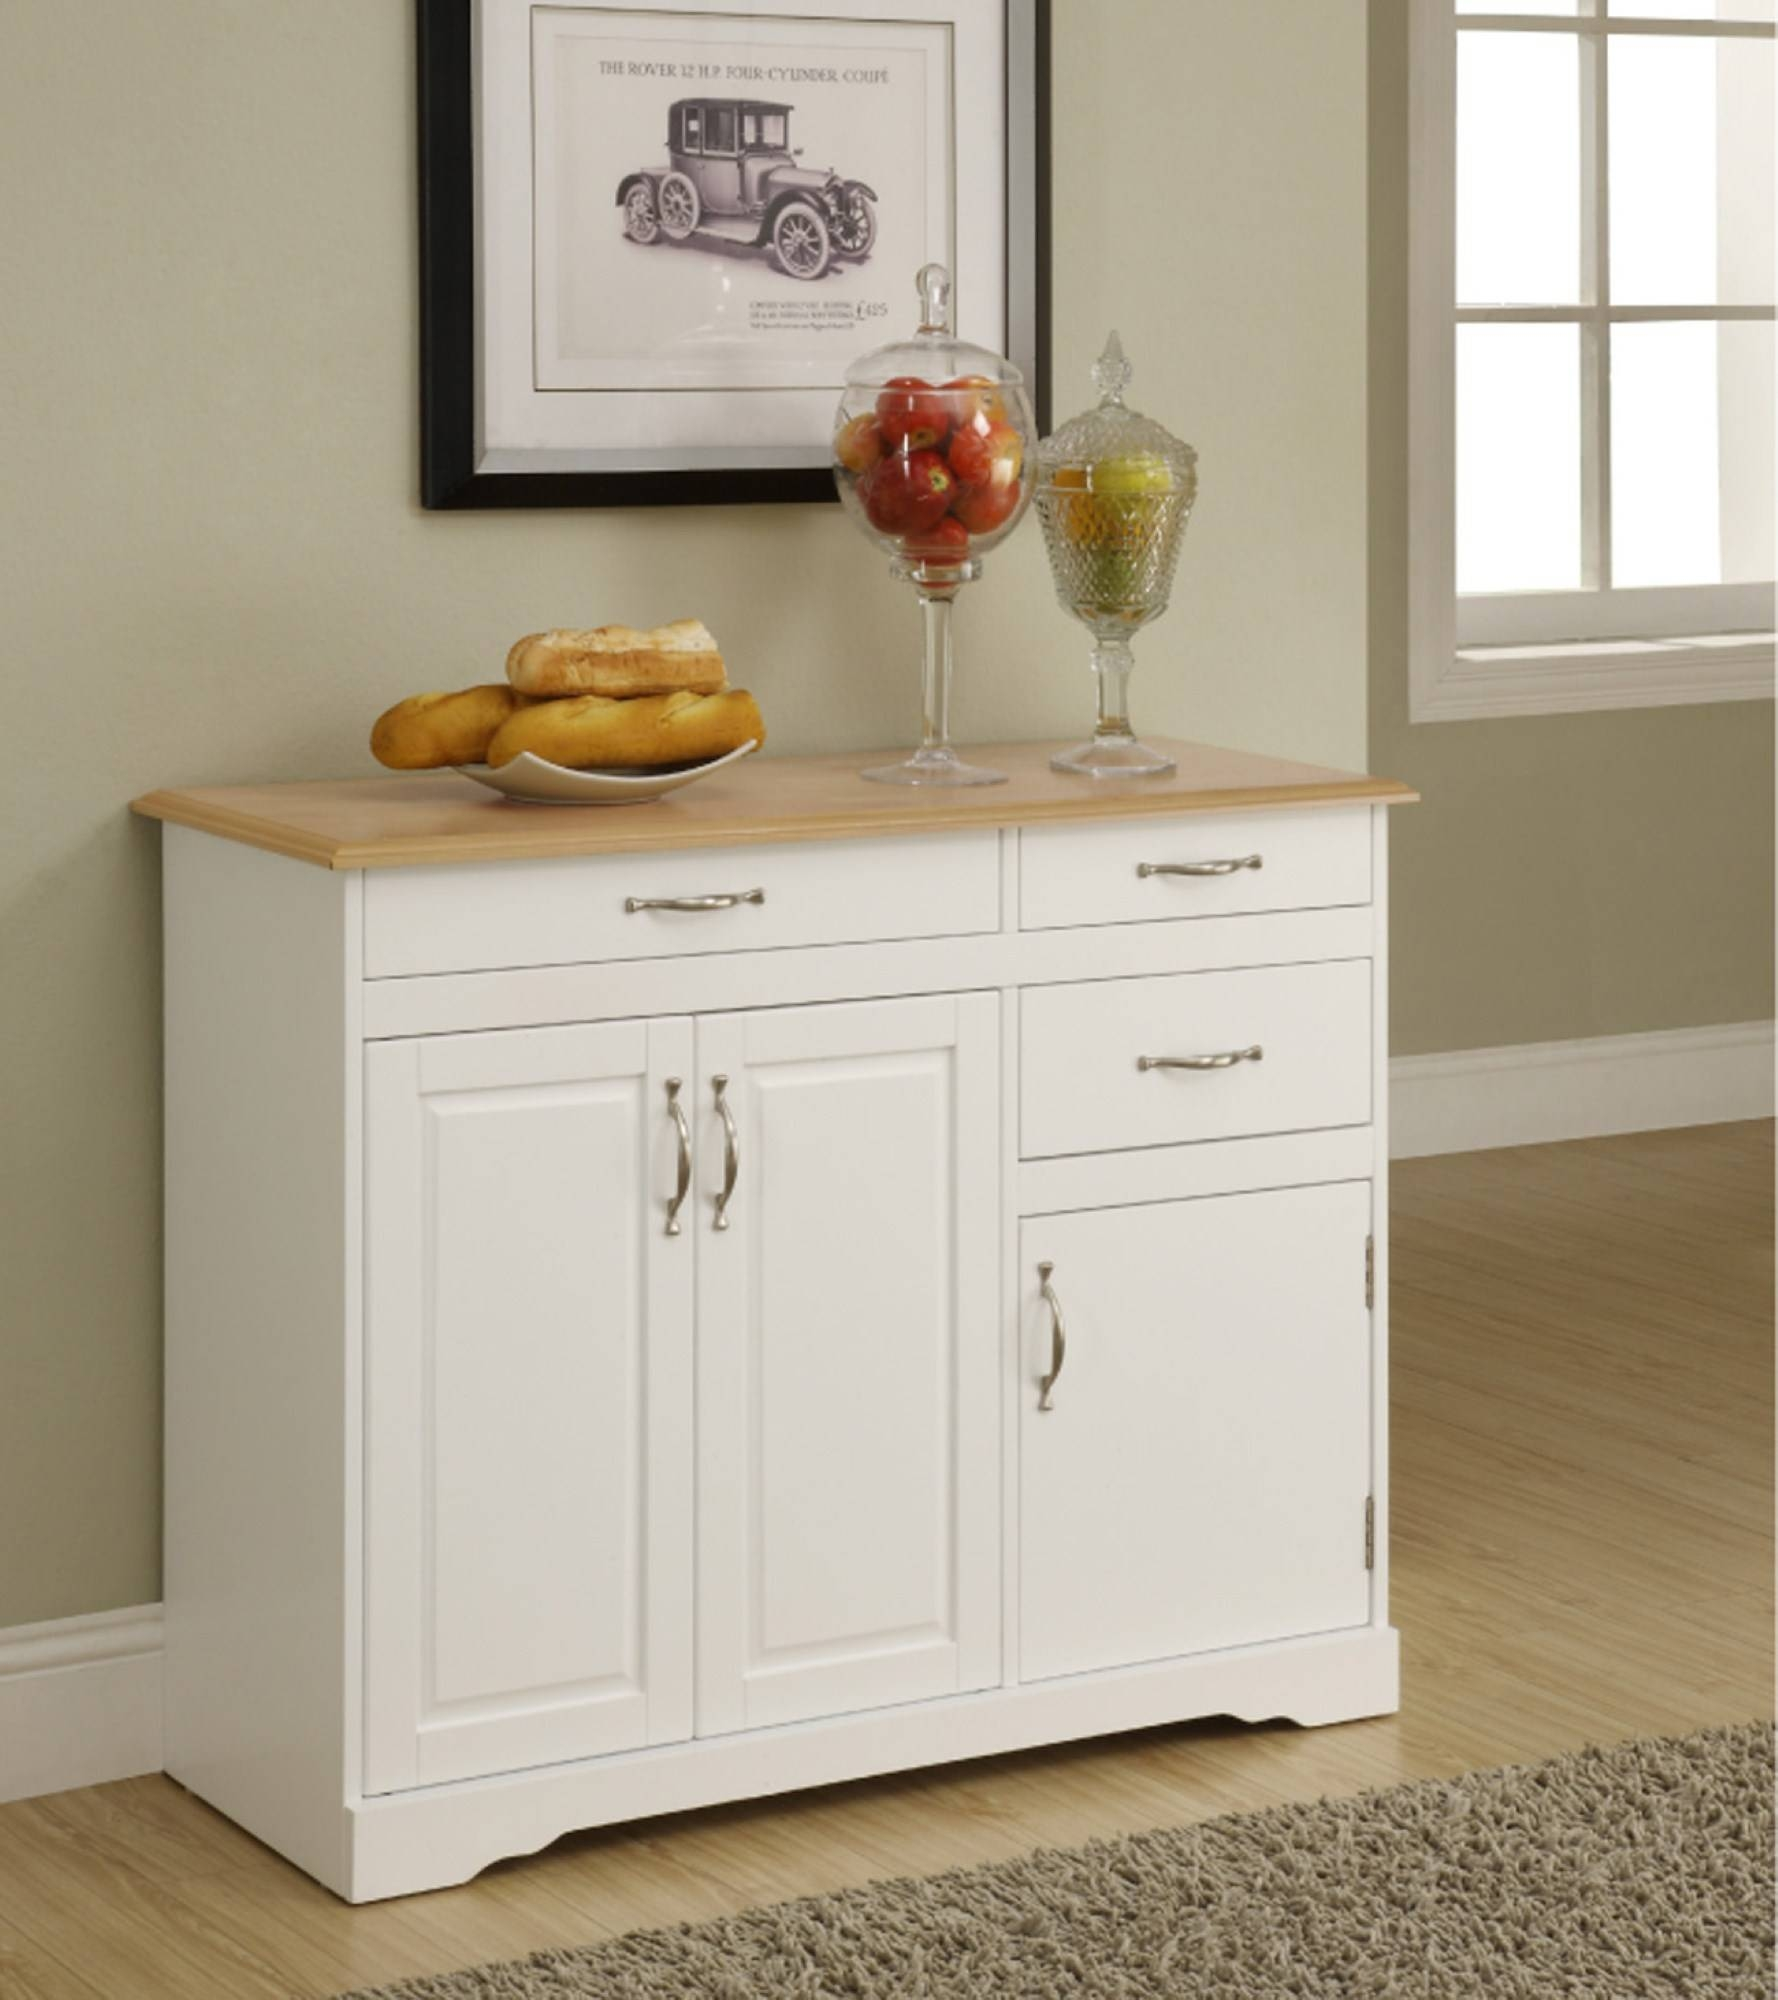 Small Buffet Cabinet - Home Design Ideas And Pictures in Small Sideboard Cabinets (Image 25 of 30)